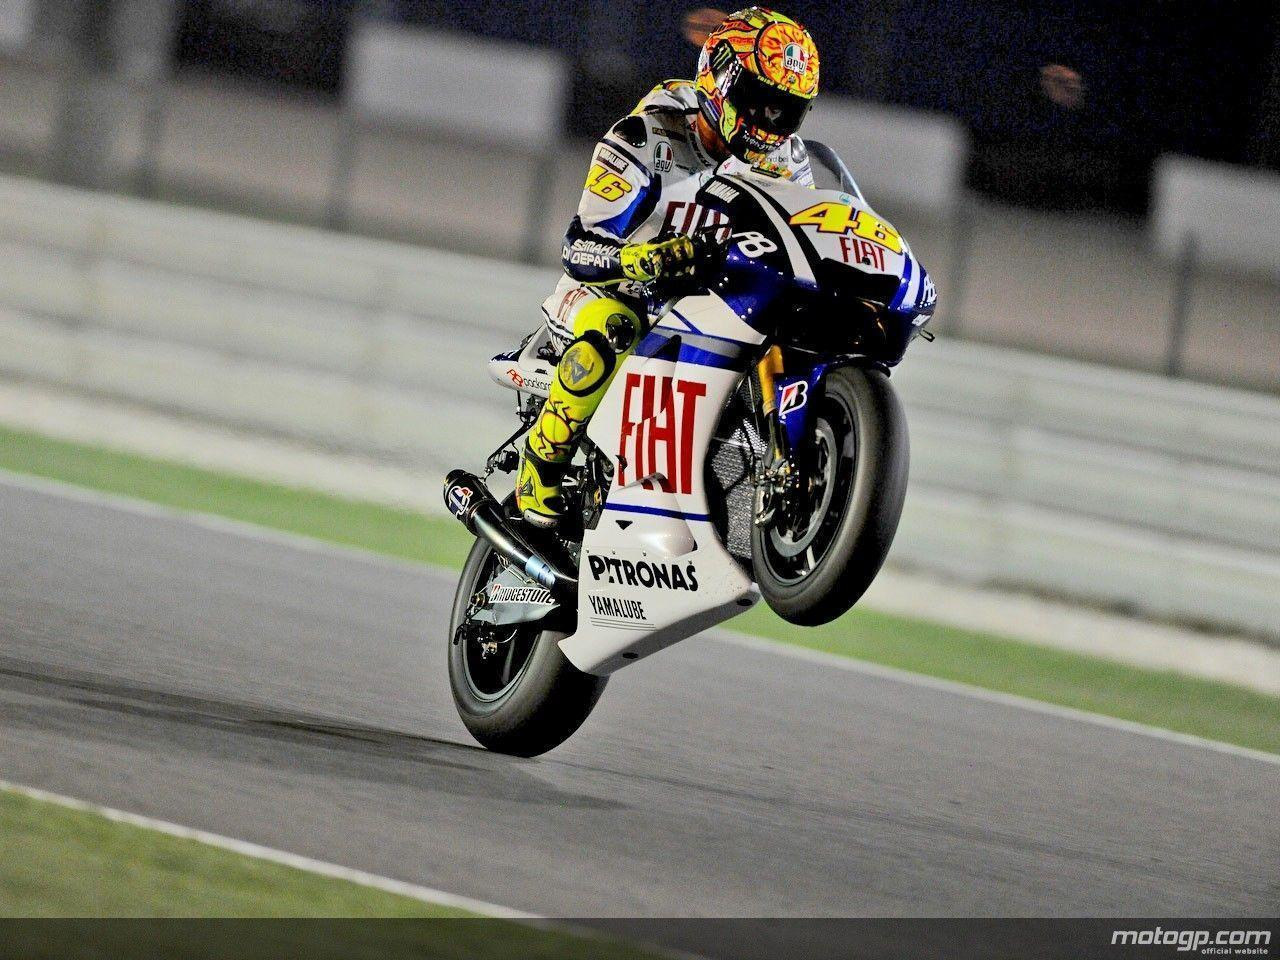 Valentino Rossi Wallpapers Collection 498×500 Wallpapers Valentino